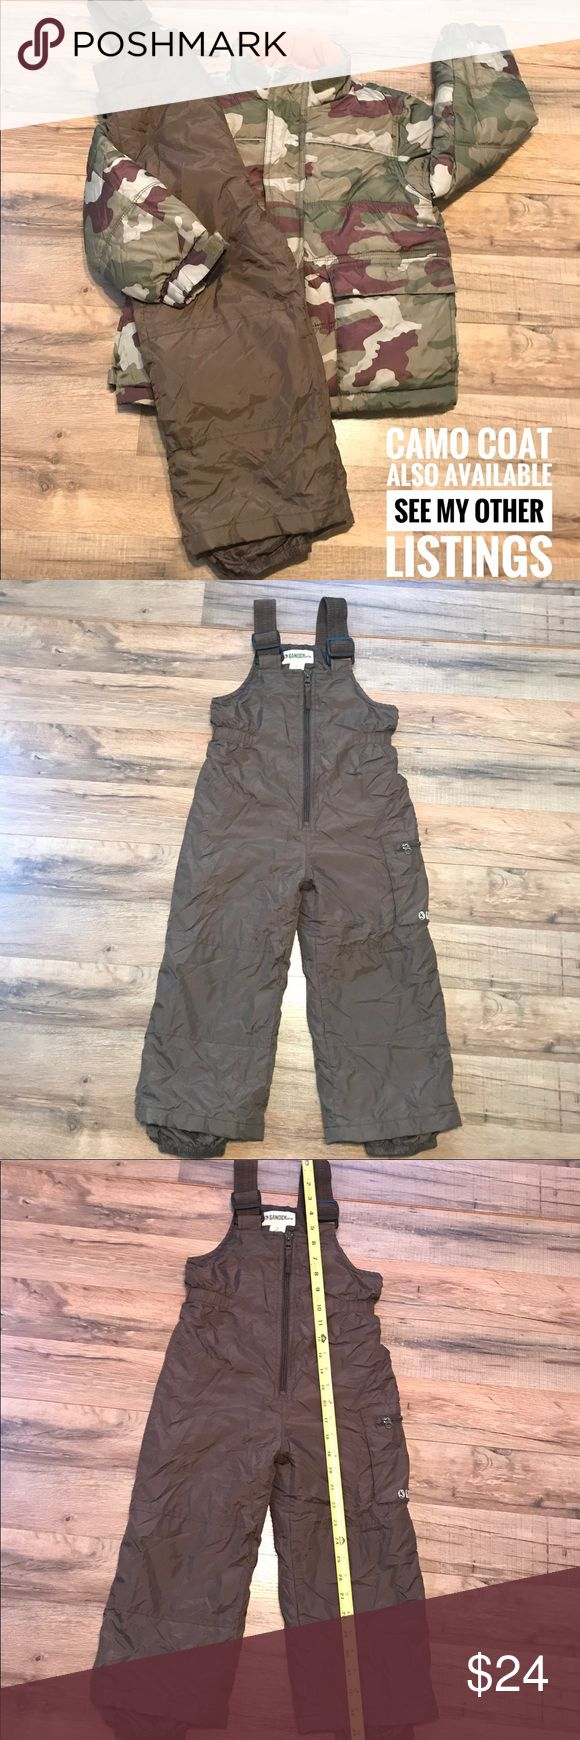 Gander Mountain Boy Ski Bibs Youth XS Brown Winter Brand:  Gander Mountain  Size:  Youth XS. (Please see photos for measurements)  Condition:  gently used; excellent preowned condition.  No rips, holes, tears, etc. Gander Mountain Other